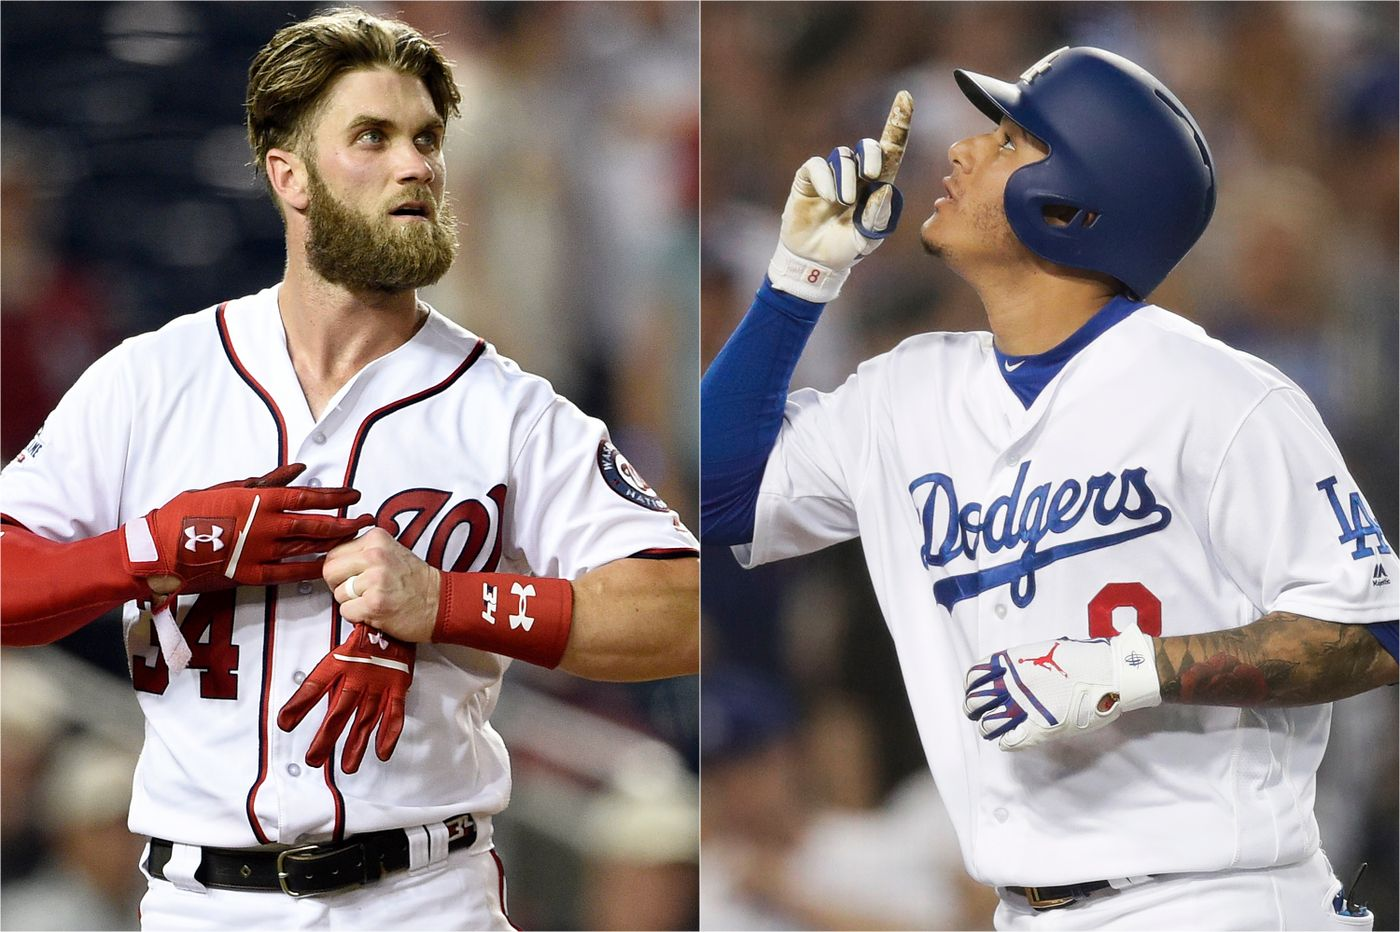 Dodgers Monster Trade Could Be Chess Move for Bryce Harper  fb5c2e46a96